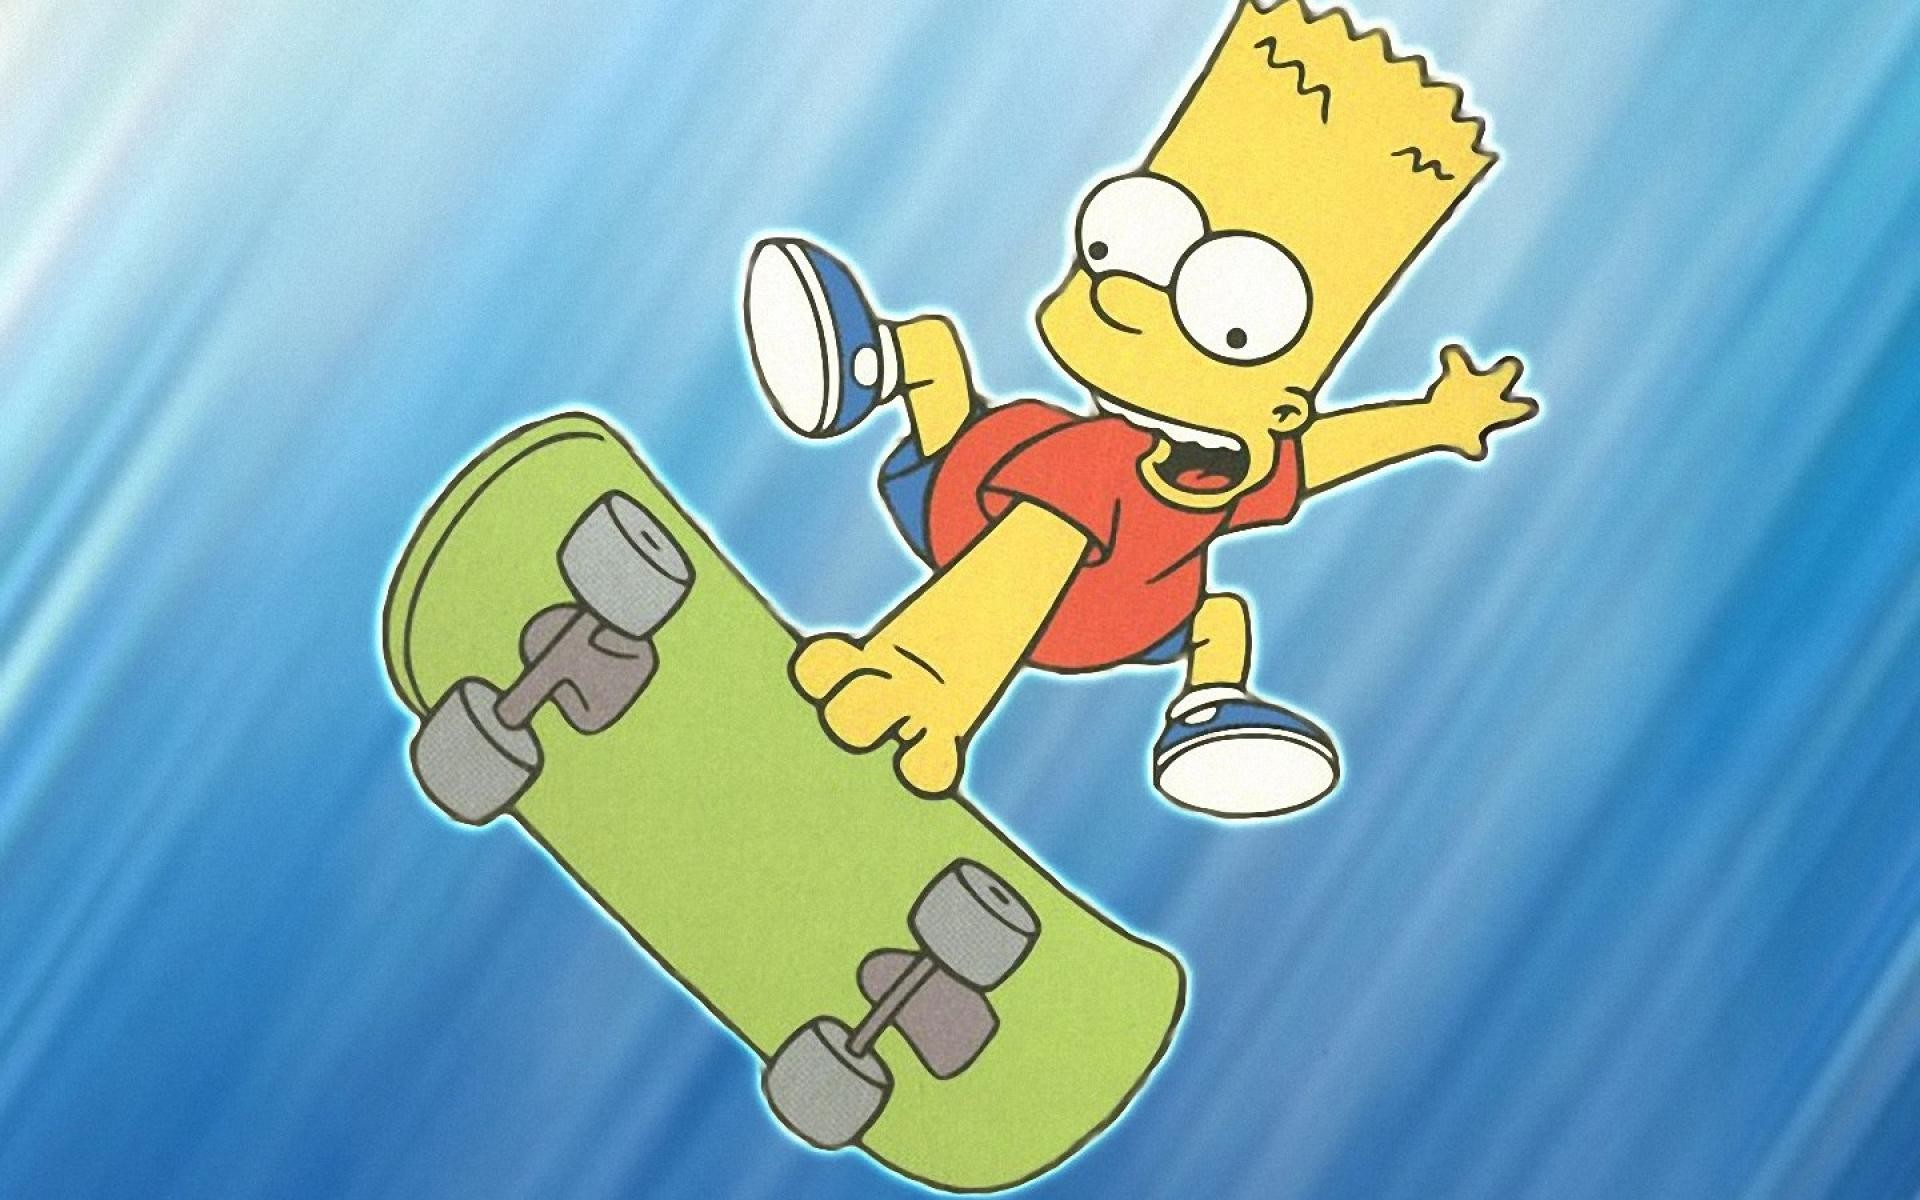 Bart simpson wallpapers 68 images 1920x1080 the simpsons wallpapers hd voltagebd Gallery